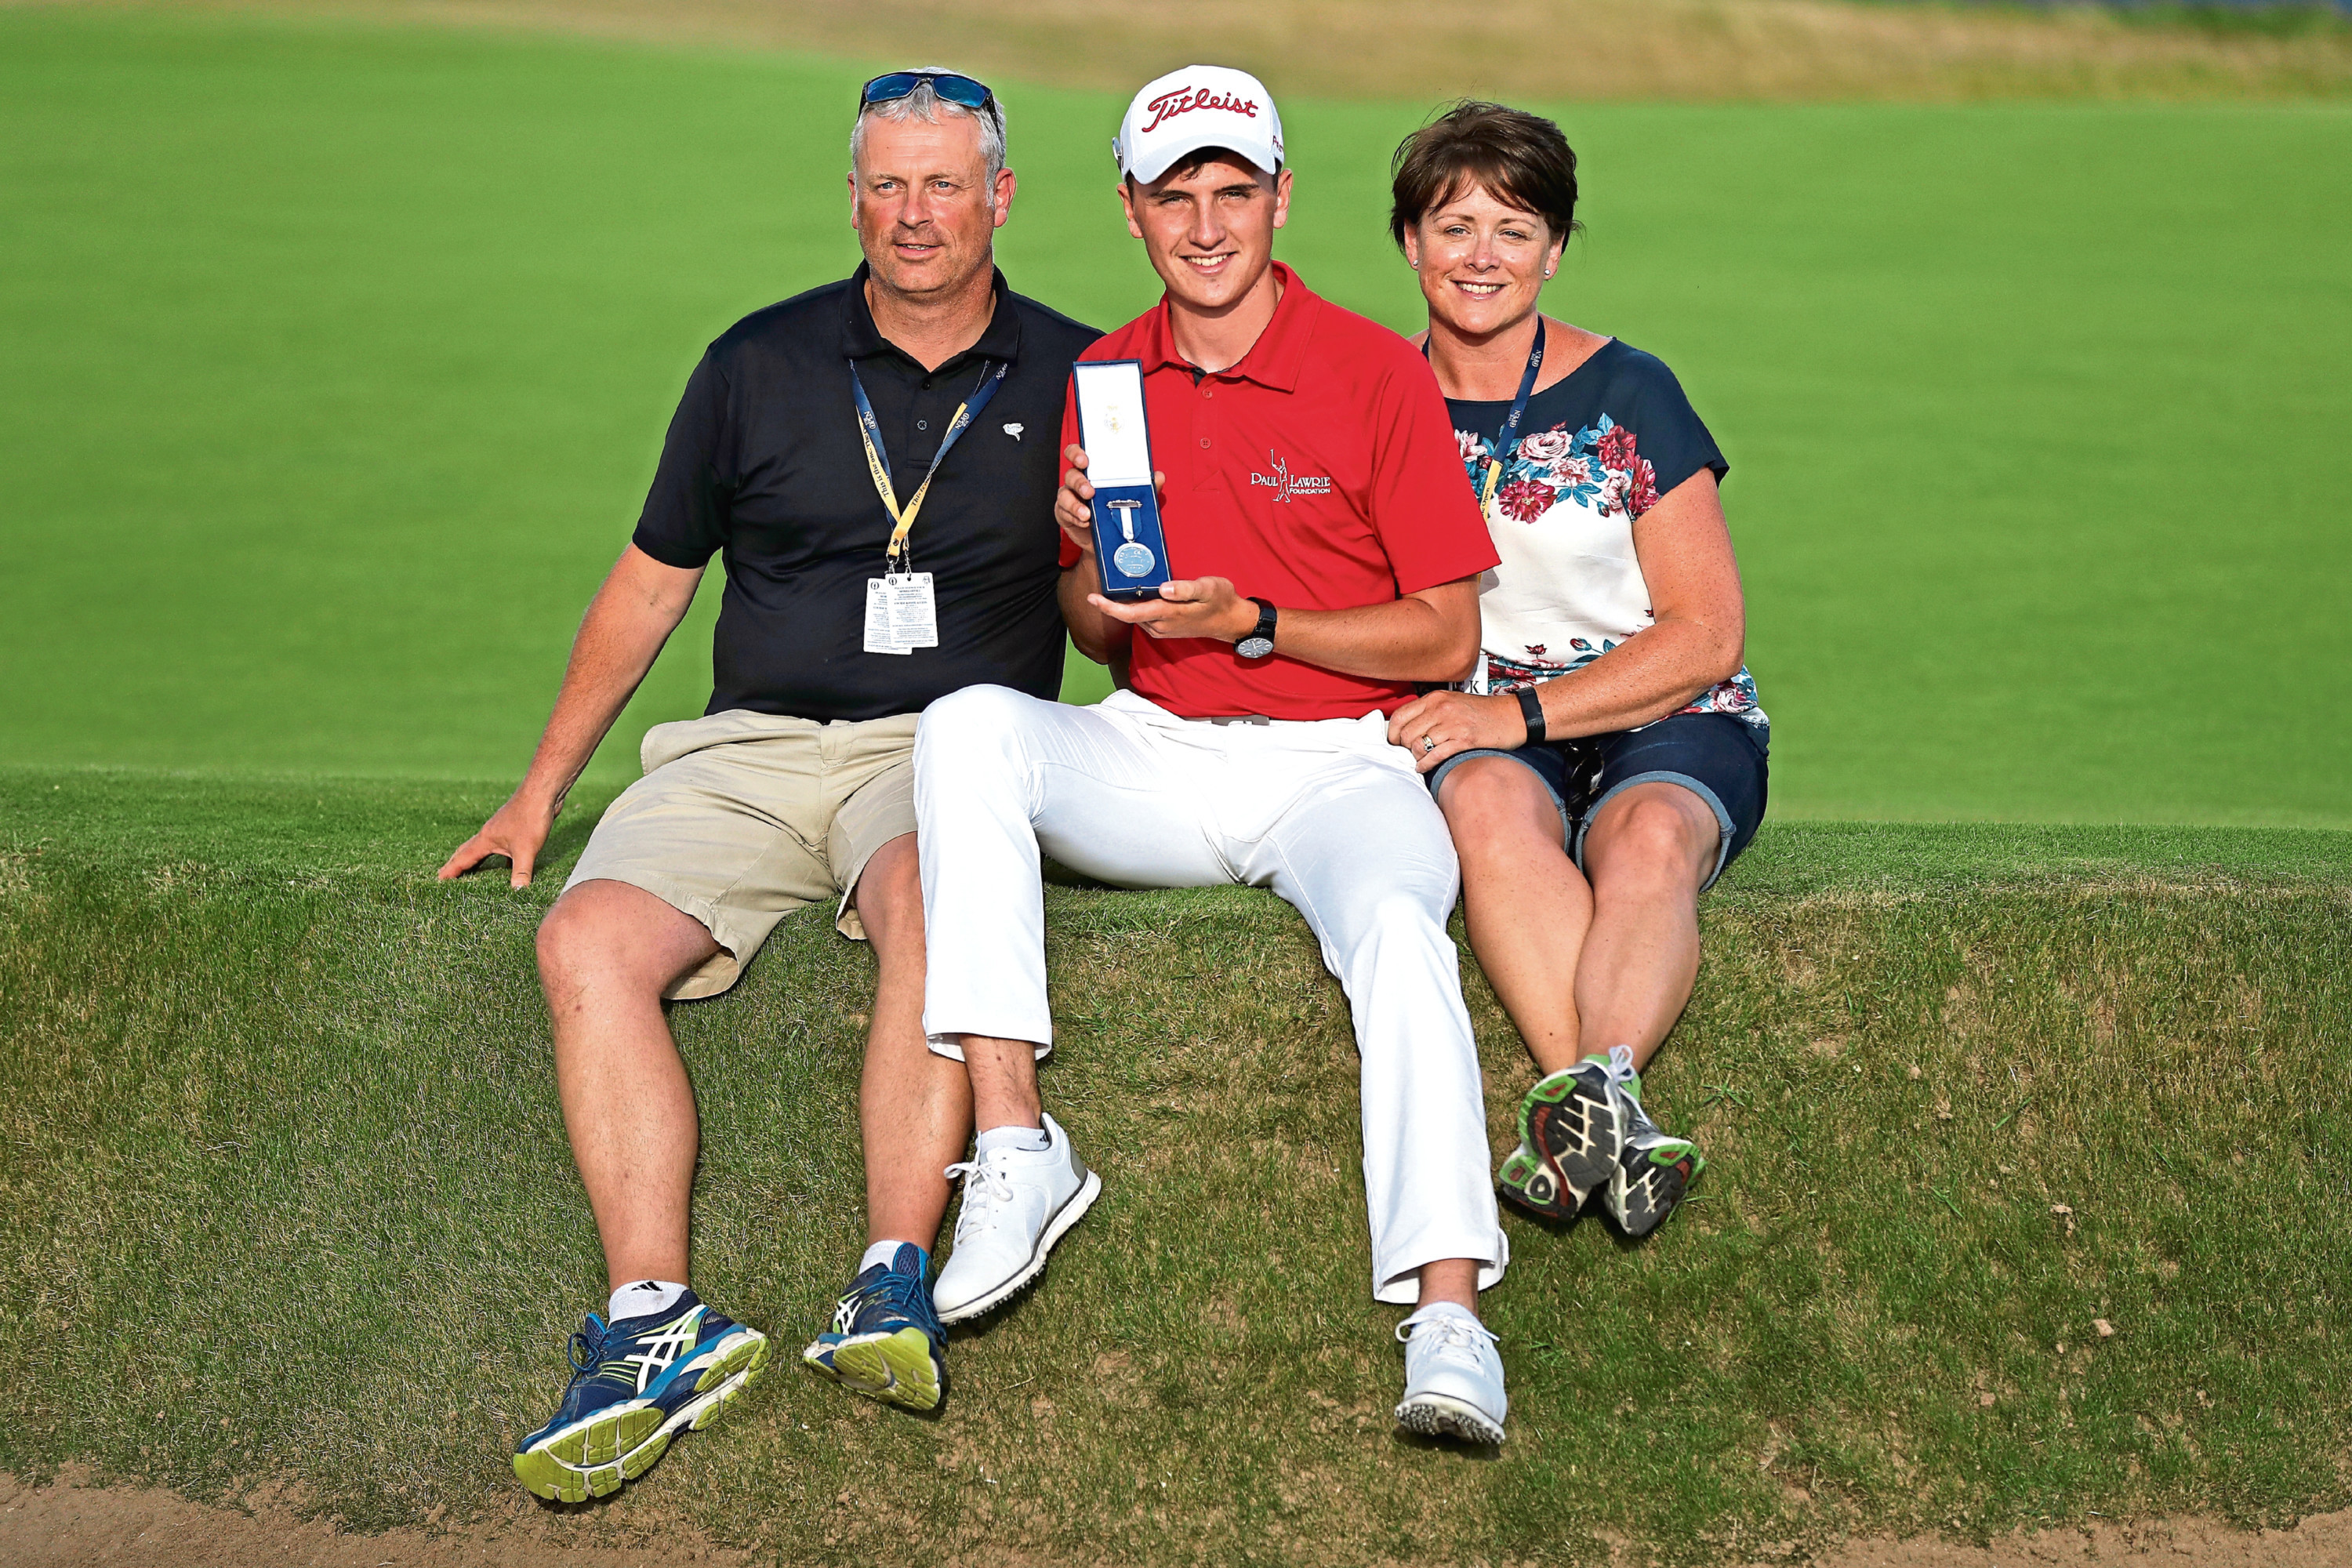 Sam Locke of Scotland holds the Silver Medal awarded to highest placed amateur with his parents Andrew and Vicky after the final round of the 147th Open Championship at Carnoustie